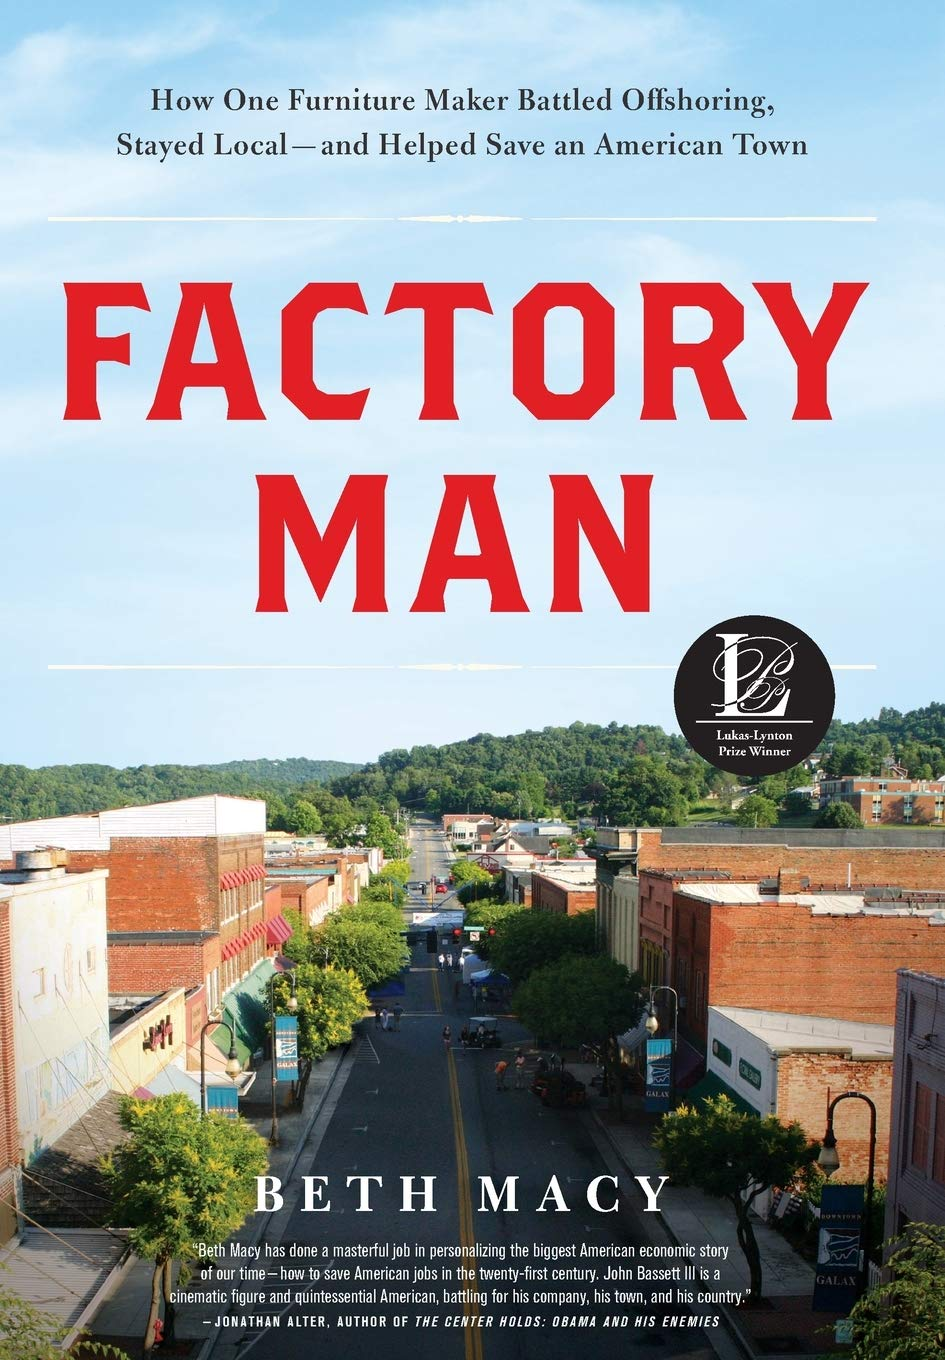 Factory Man: How One Furniture Maker Battled Offshoring, Stayed Local - and Helped Save an American Town by Little Brown and Company